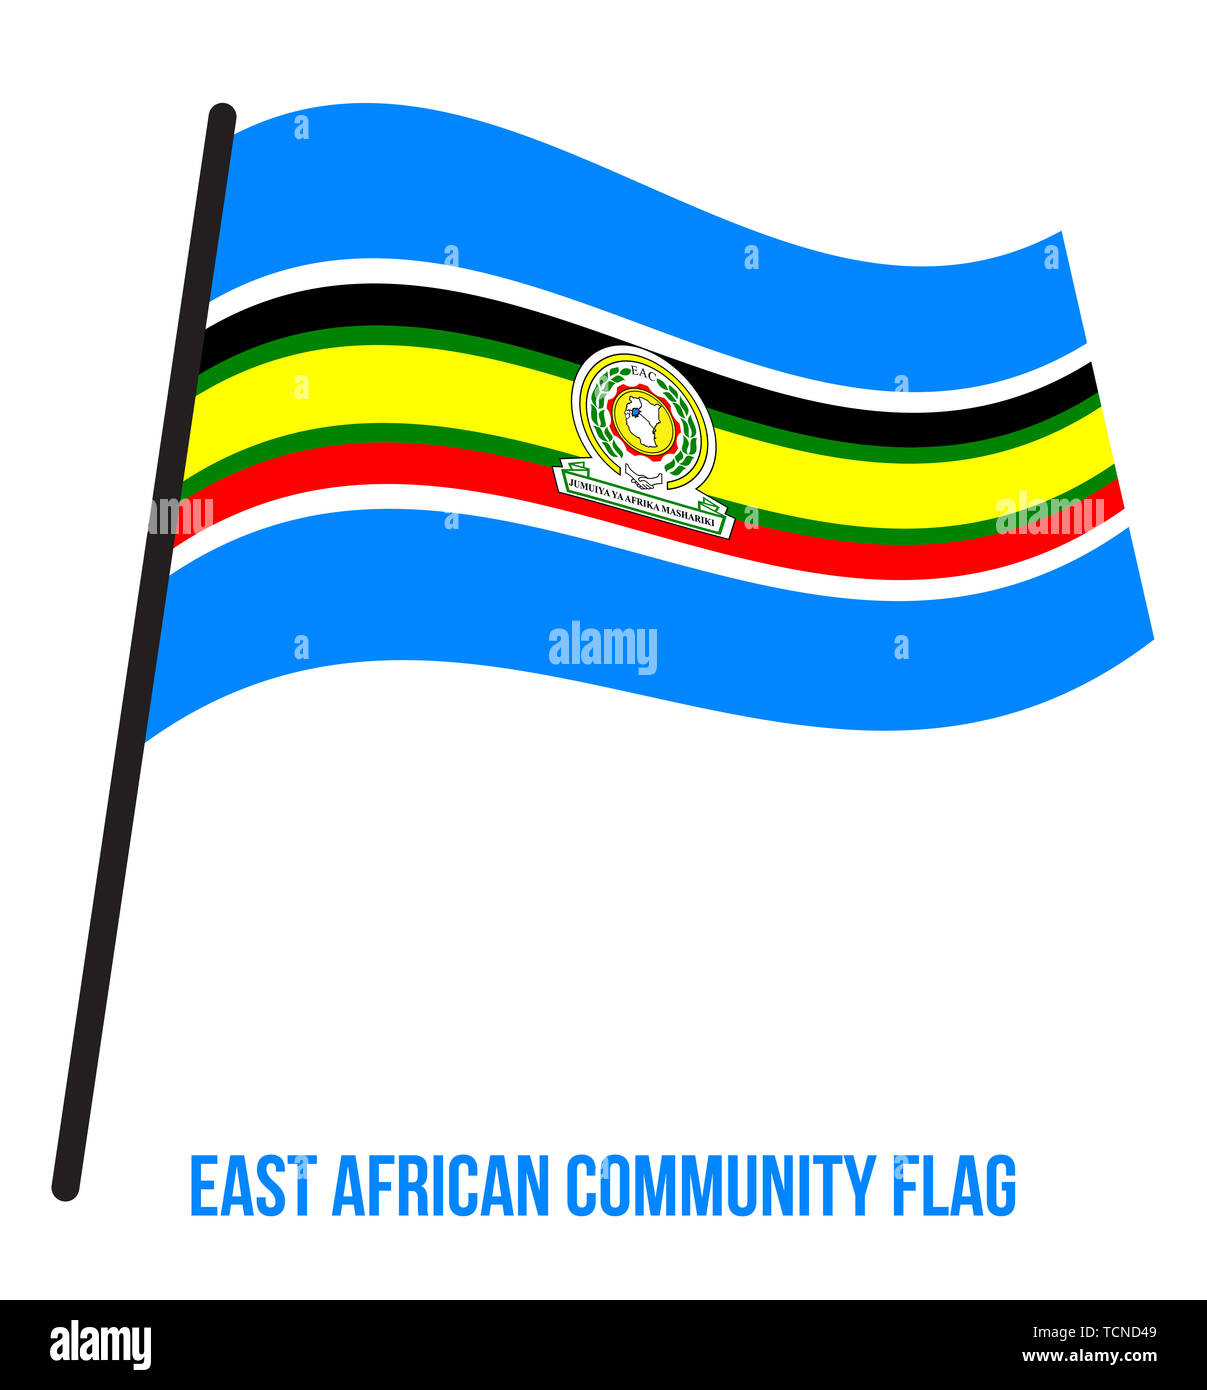 East African Community Flag Waving Vector Illustration on White Background. Stock Photo